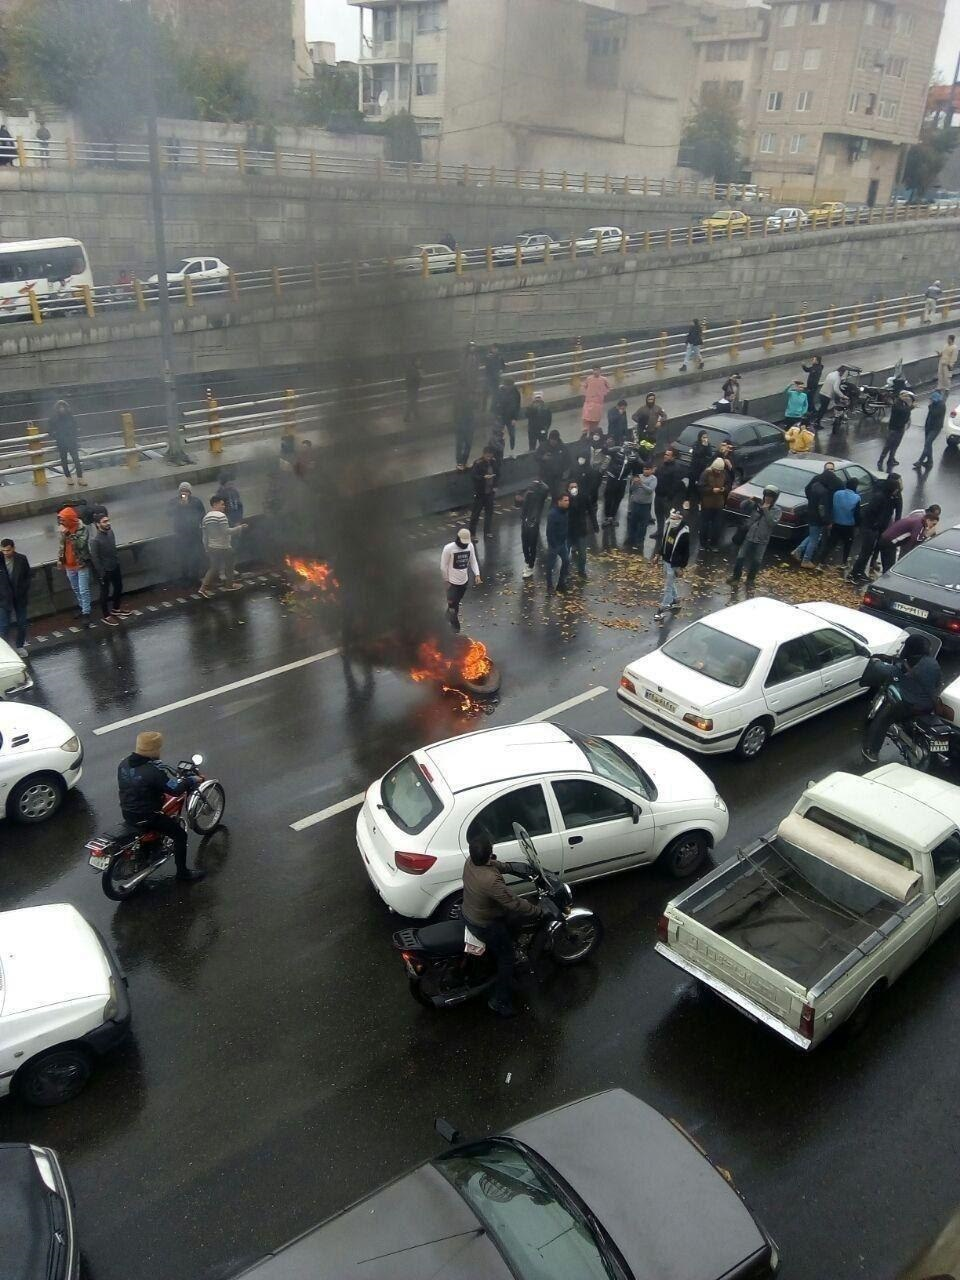 Iran's regime is doomed, writes Ali Safavi, an official with the Foreign Affairs Committee of the Paris-based National Council of Resistance ofIran(NCRI)